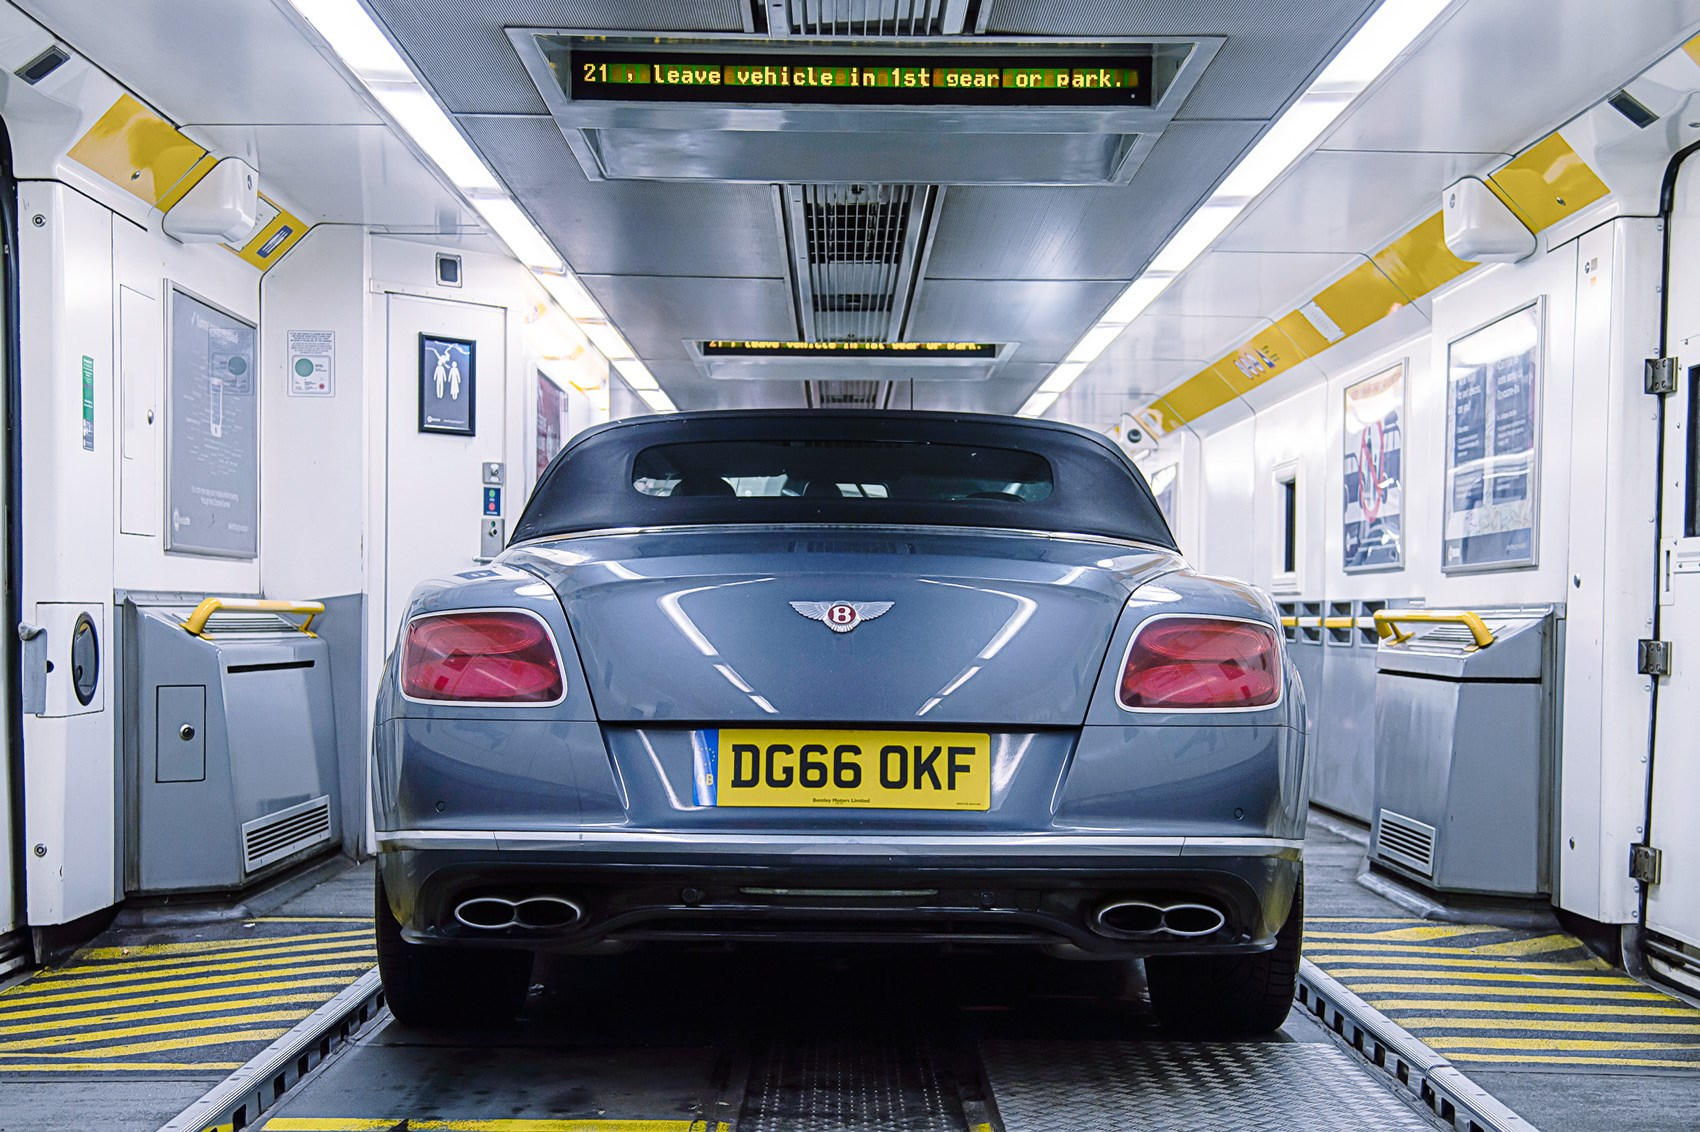 bentley top in the conti average show cost speed frankfurt a motor covers gt of car news full autocar shows and specs revealed new continental has video